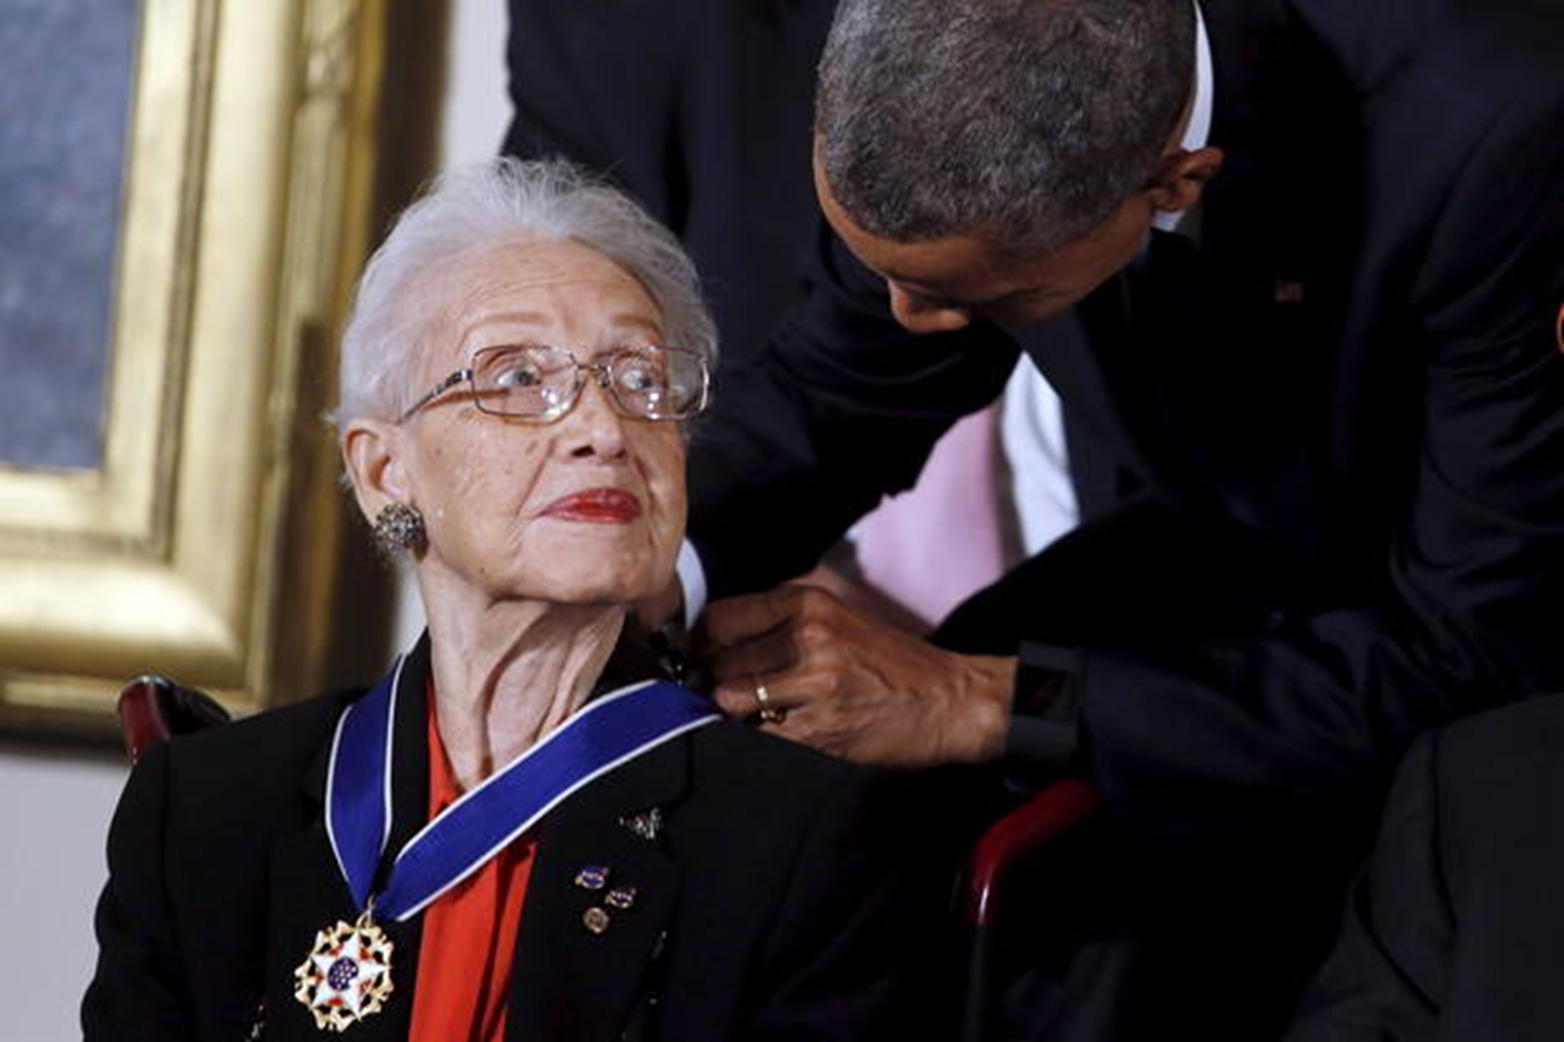 Katherine Johnson also received a silver Snoopy award